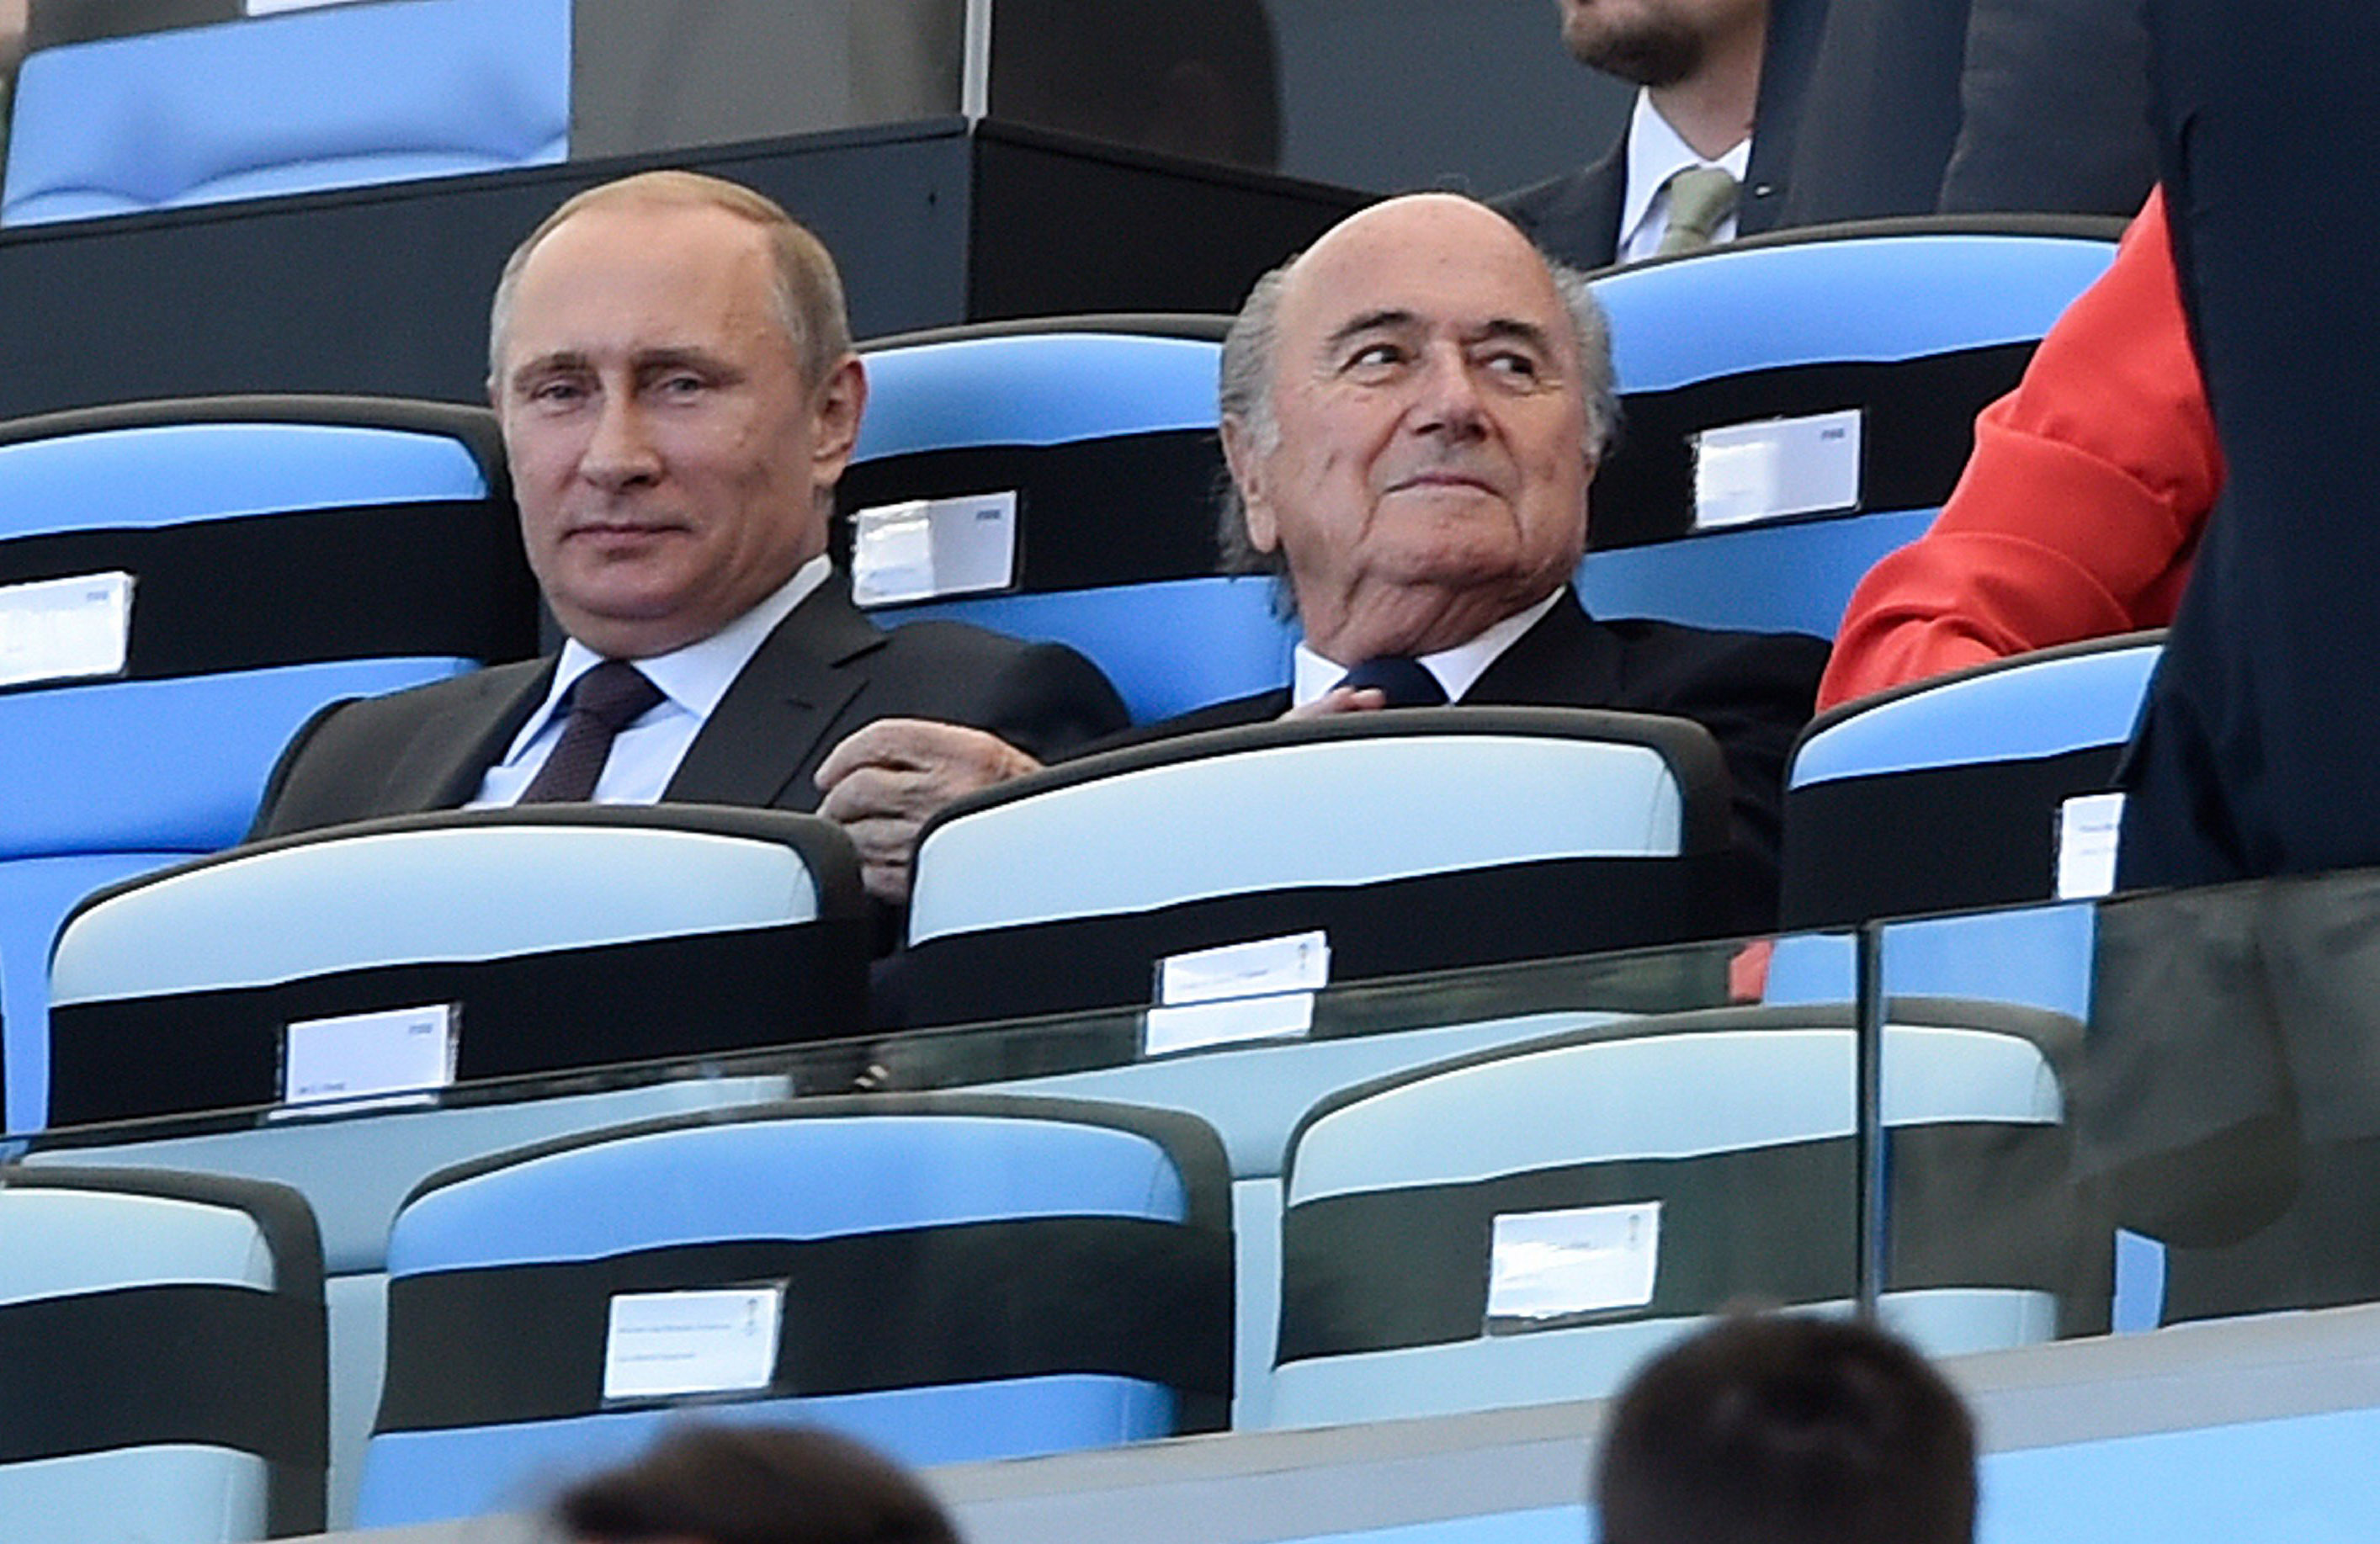 Blatter, right, is one of the most quintessential Bond villains this generation has ever seen.